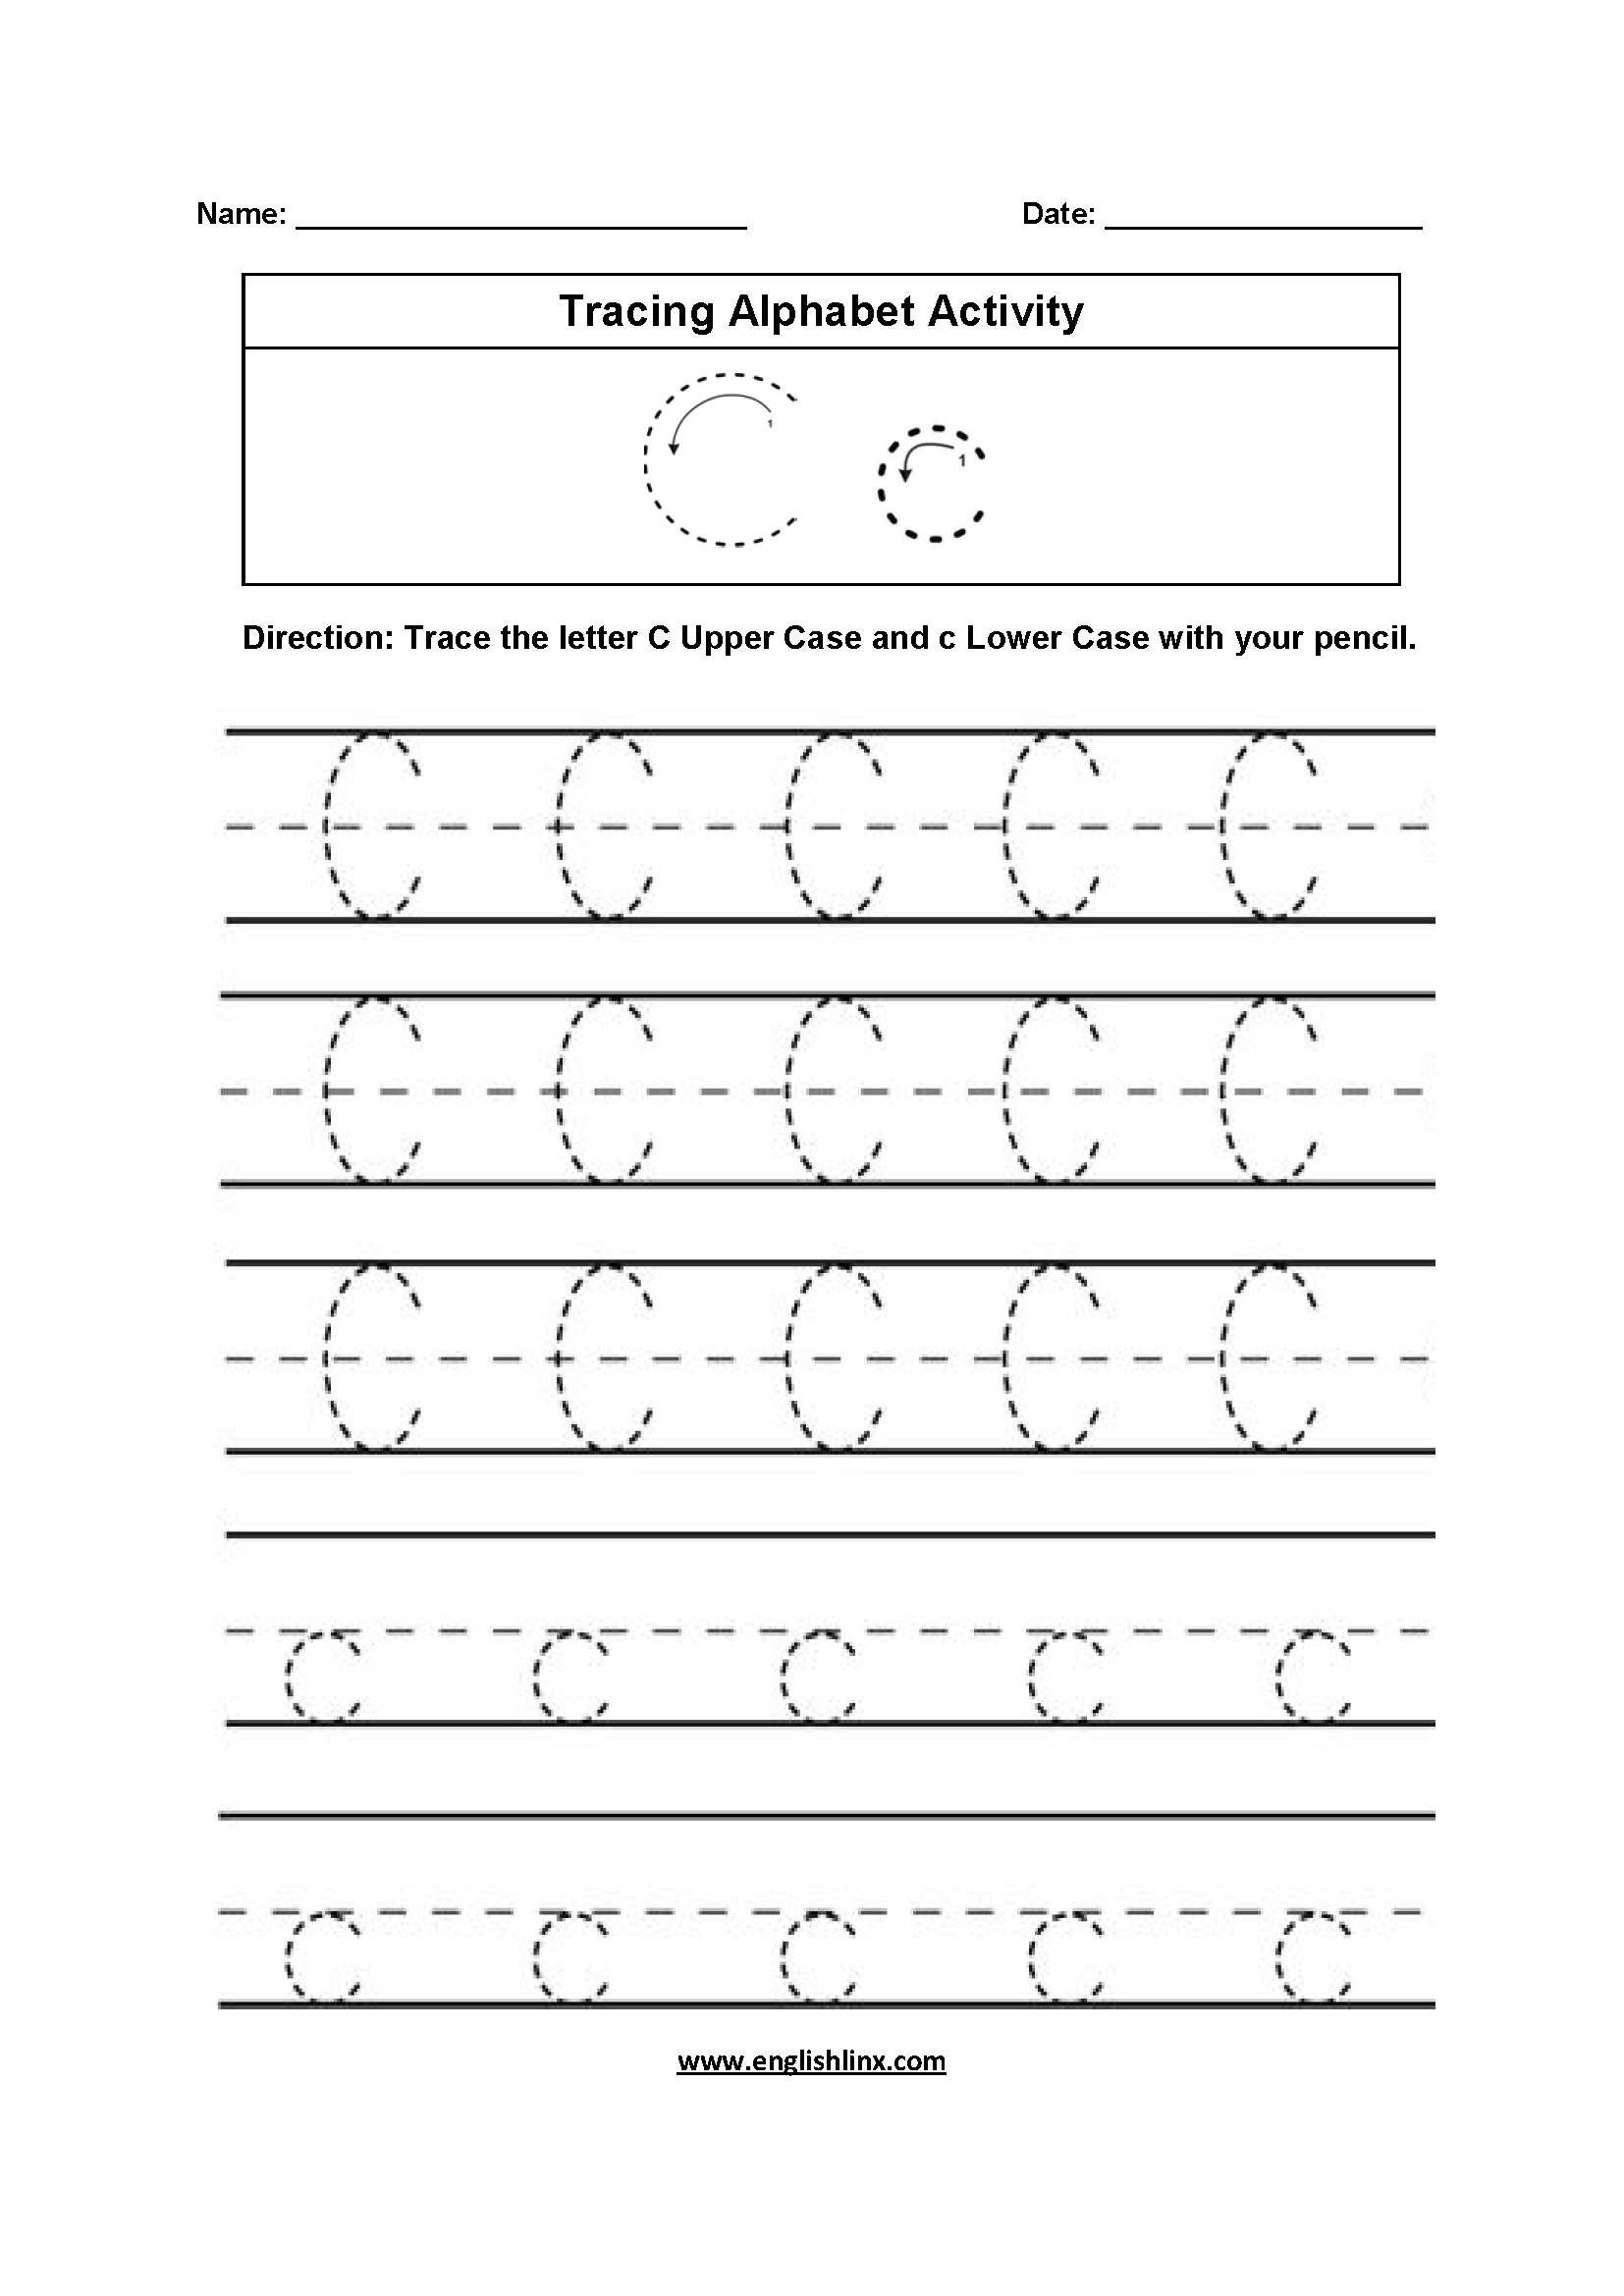 Alphabet Worksheets | Tracing Alphabet Worksheets for Tracing Over Letters Worksheets